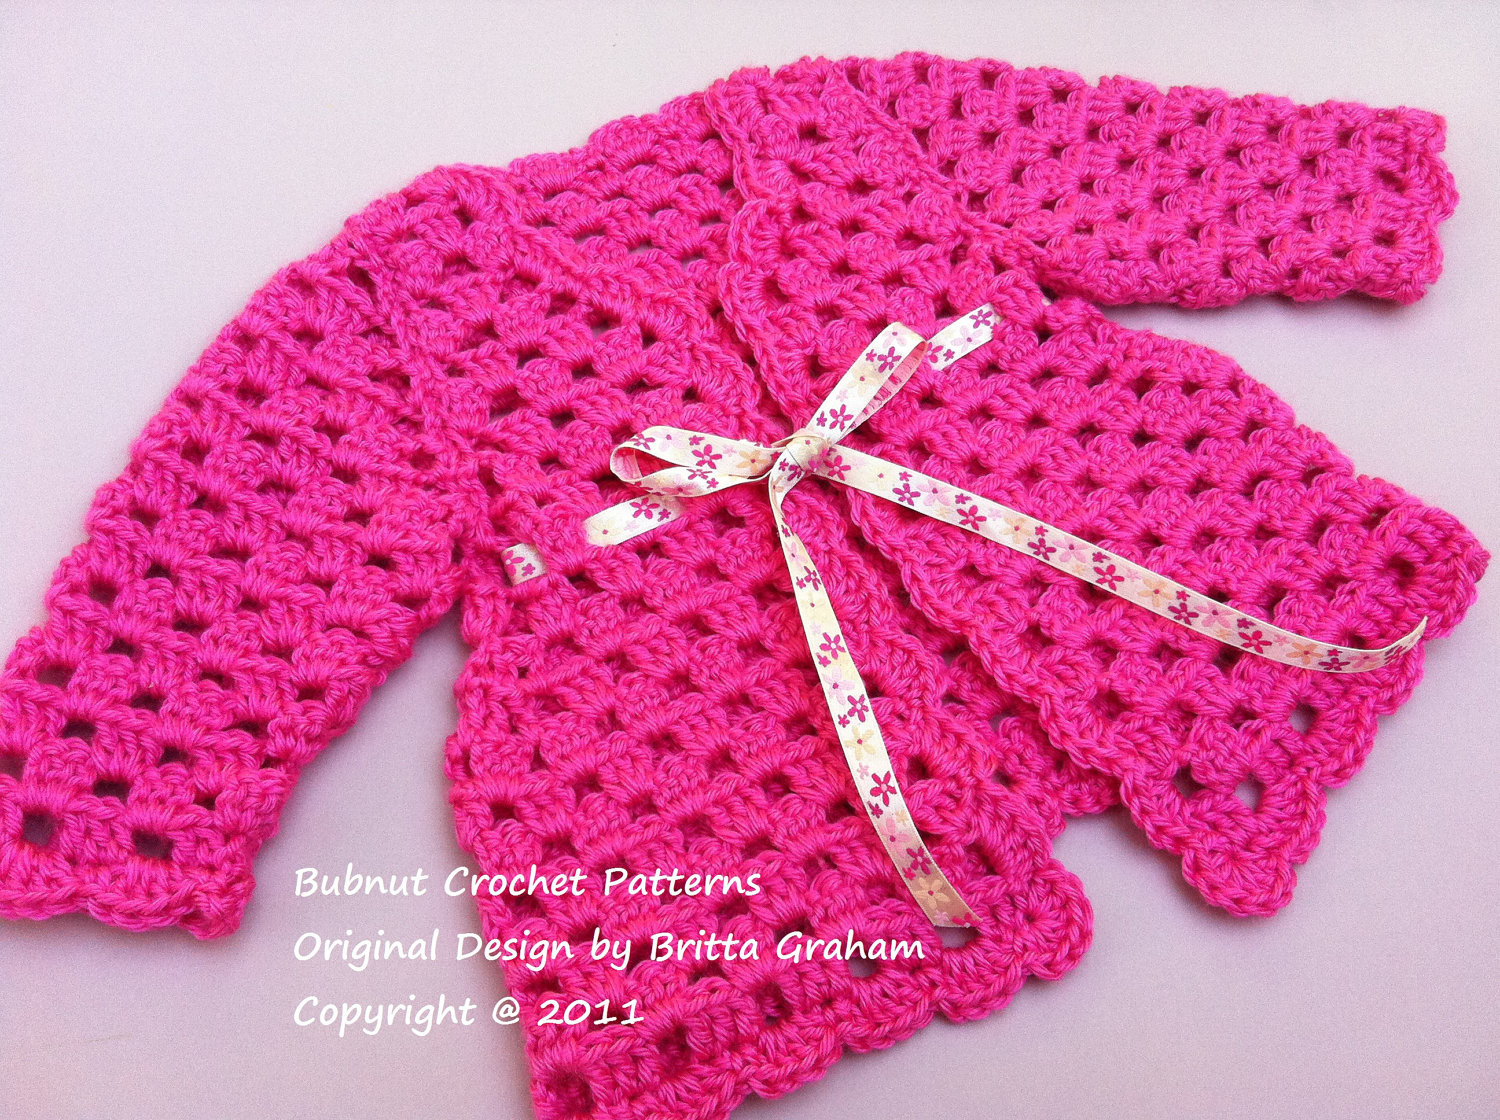 Crochet Baby Cardigan Awesome Easy Crochet Baby Sweater Pattern Of Amazing 49 Pics Crochet Baby Cardigan